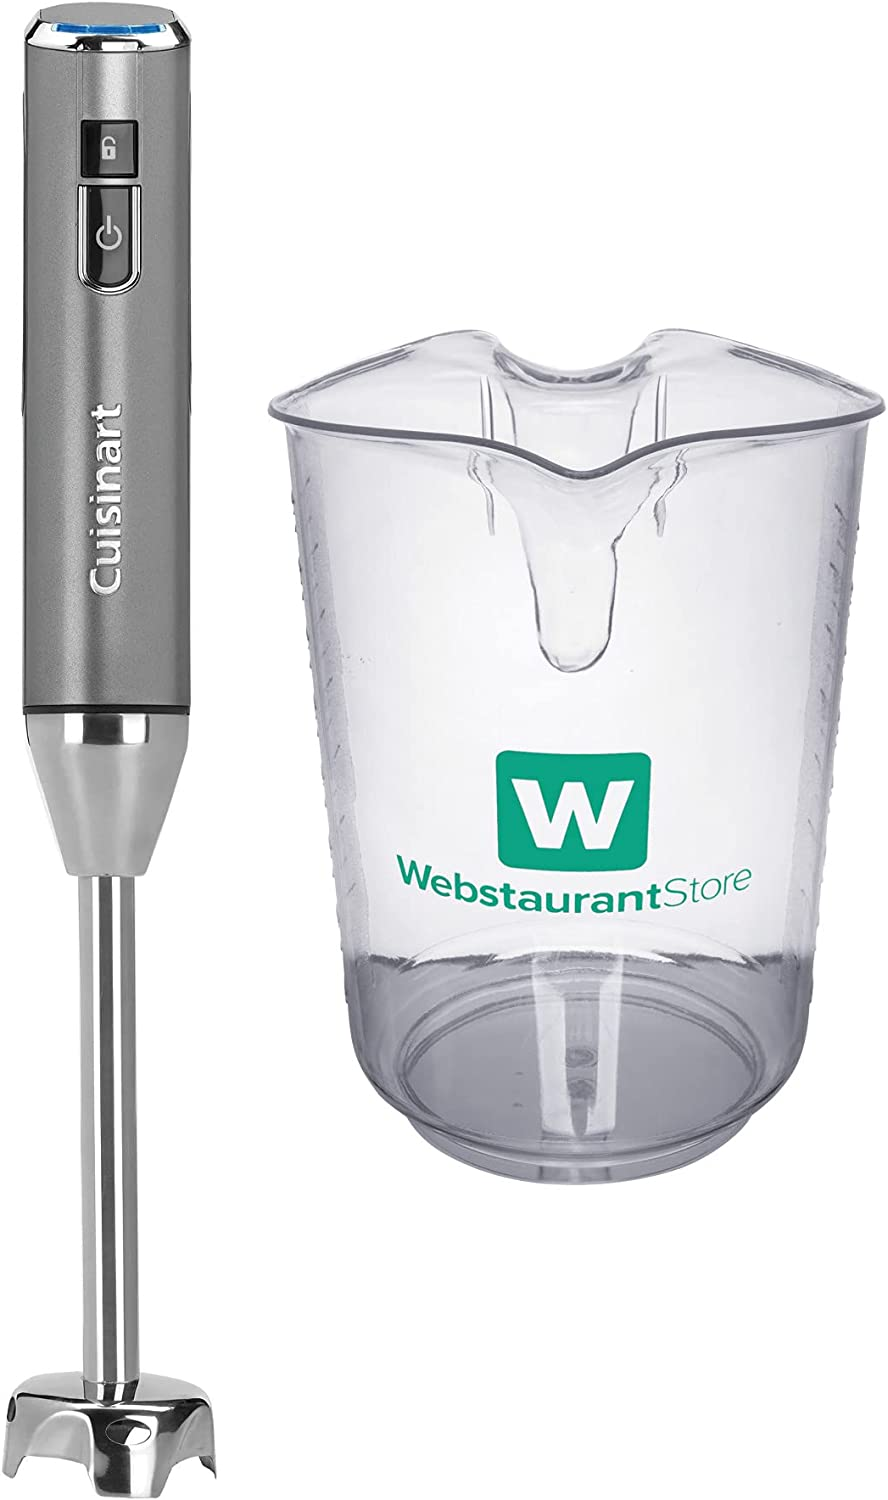 Cuisinart RHB-100 EvolutionX Cordless Rechargeable Hand Blender with 4 Qt. Clear Polycarbonate Measuring Cup Bundle (2 Items)